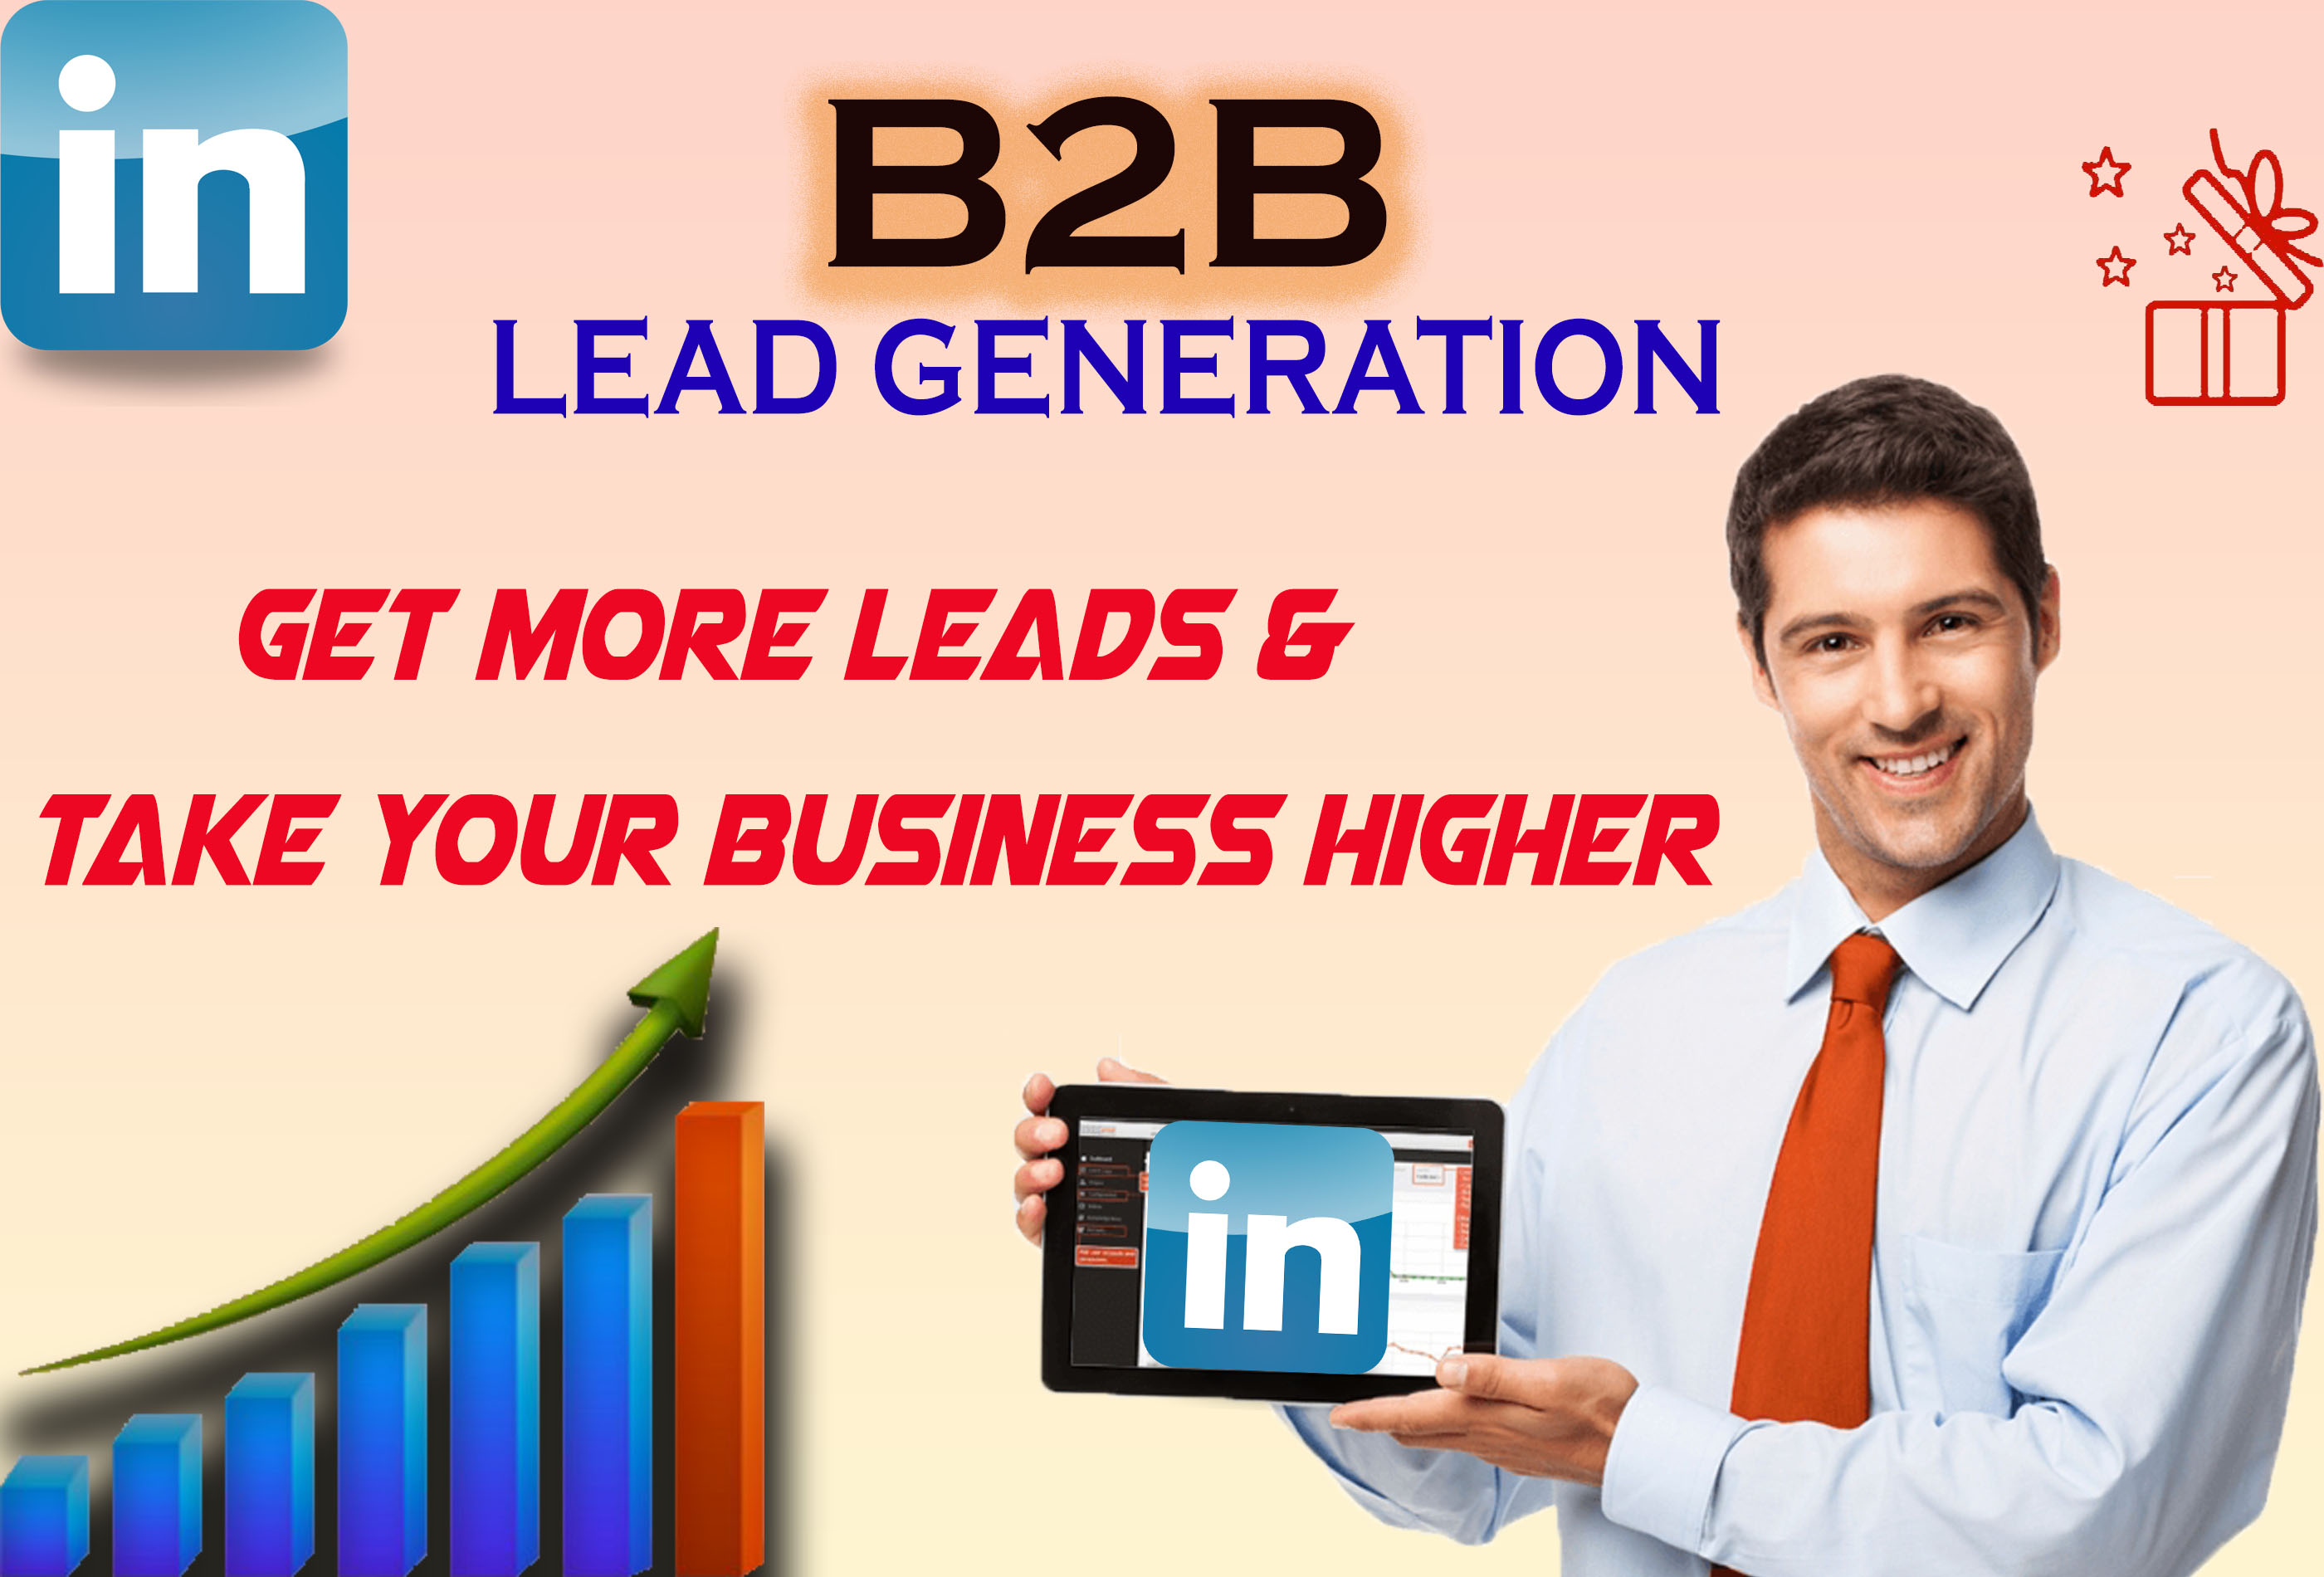 I will give Linkedin marketing and lead generation